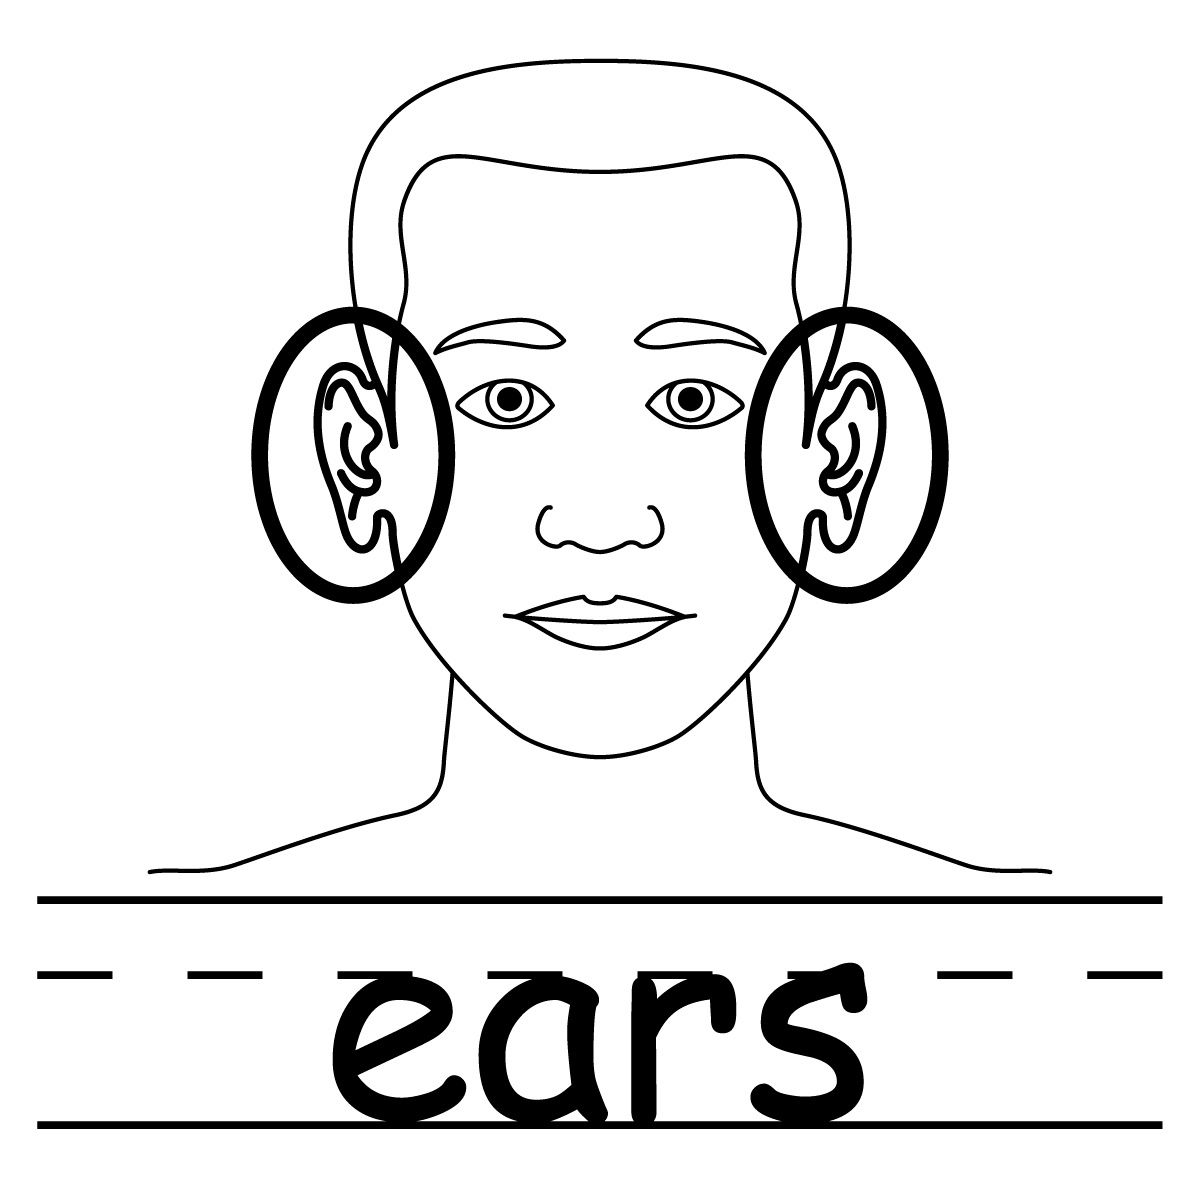 Ear Of Corn Coloring Pages Ear Coloring Pages Bunny Ears Coloring